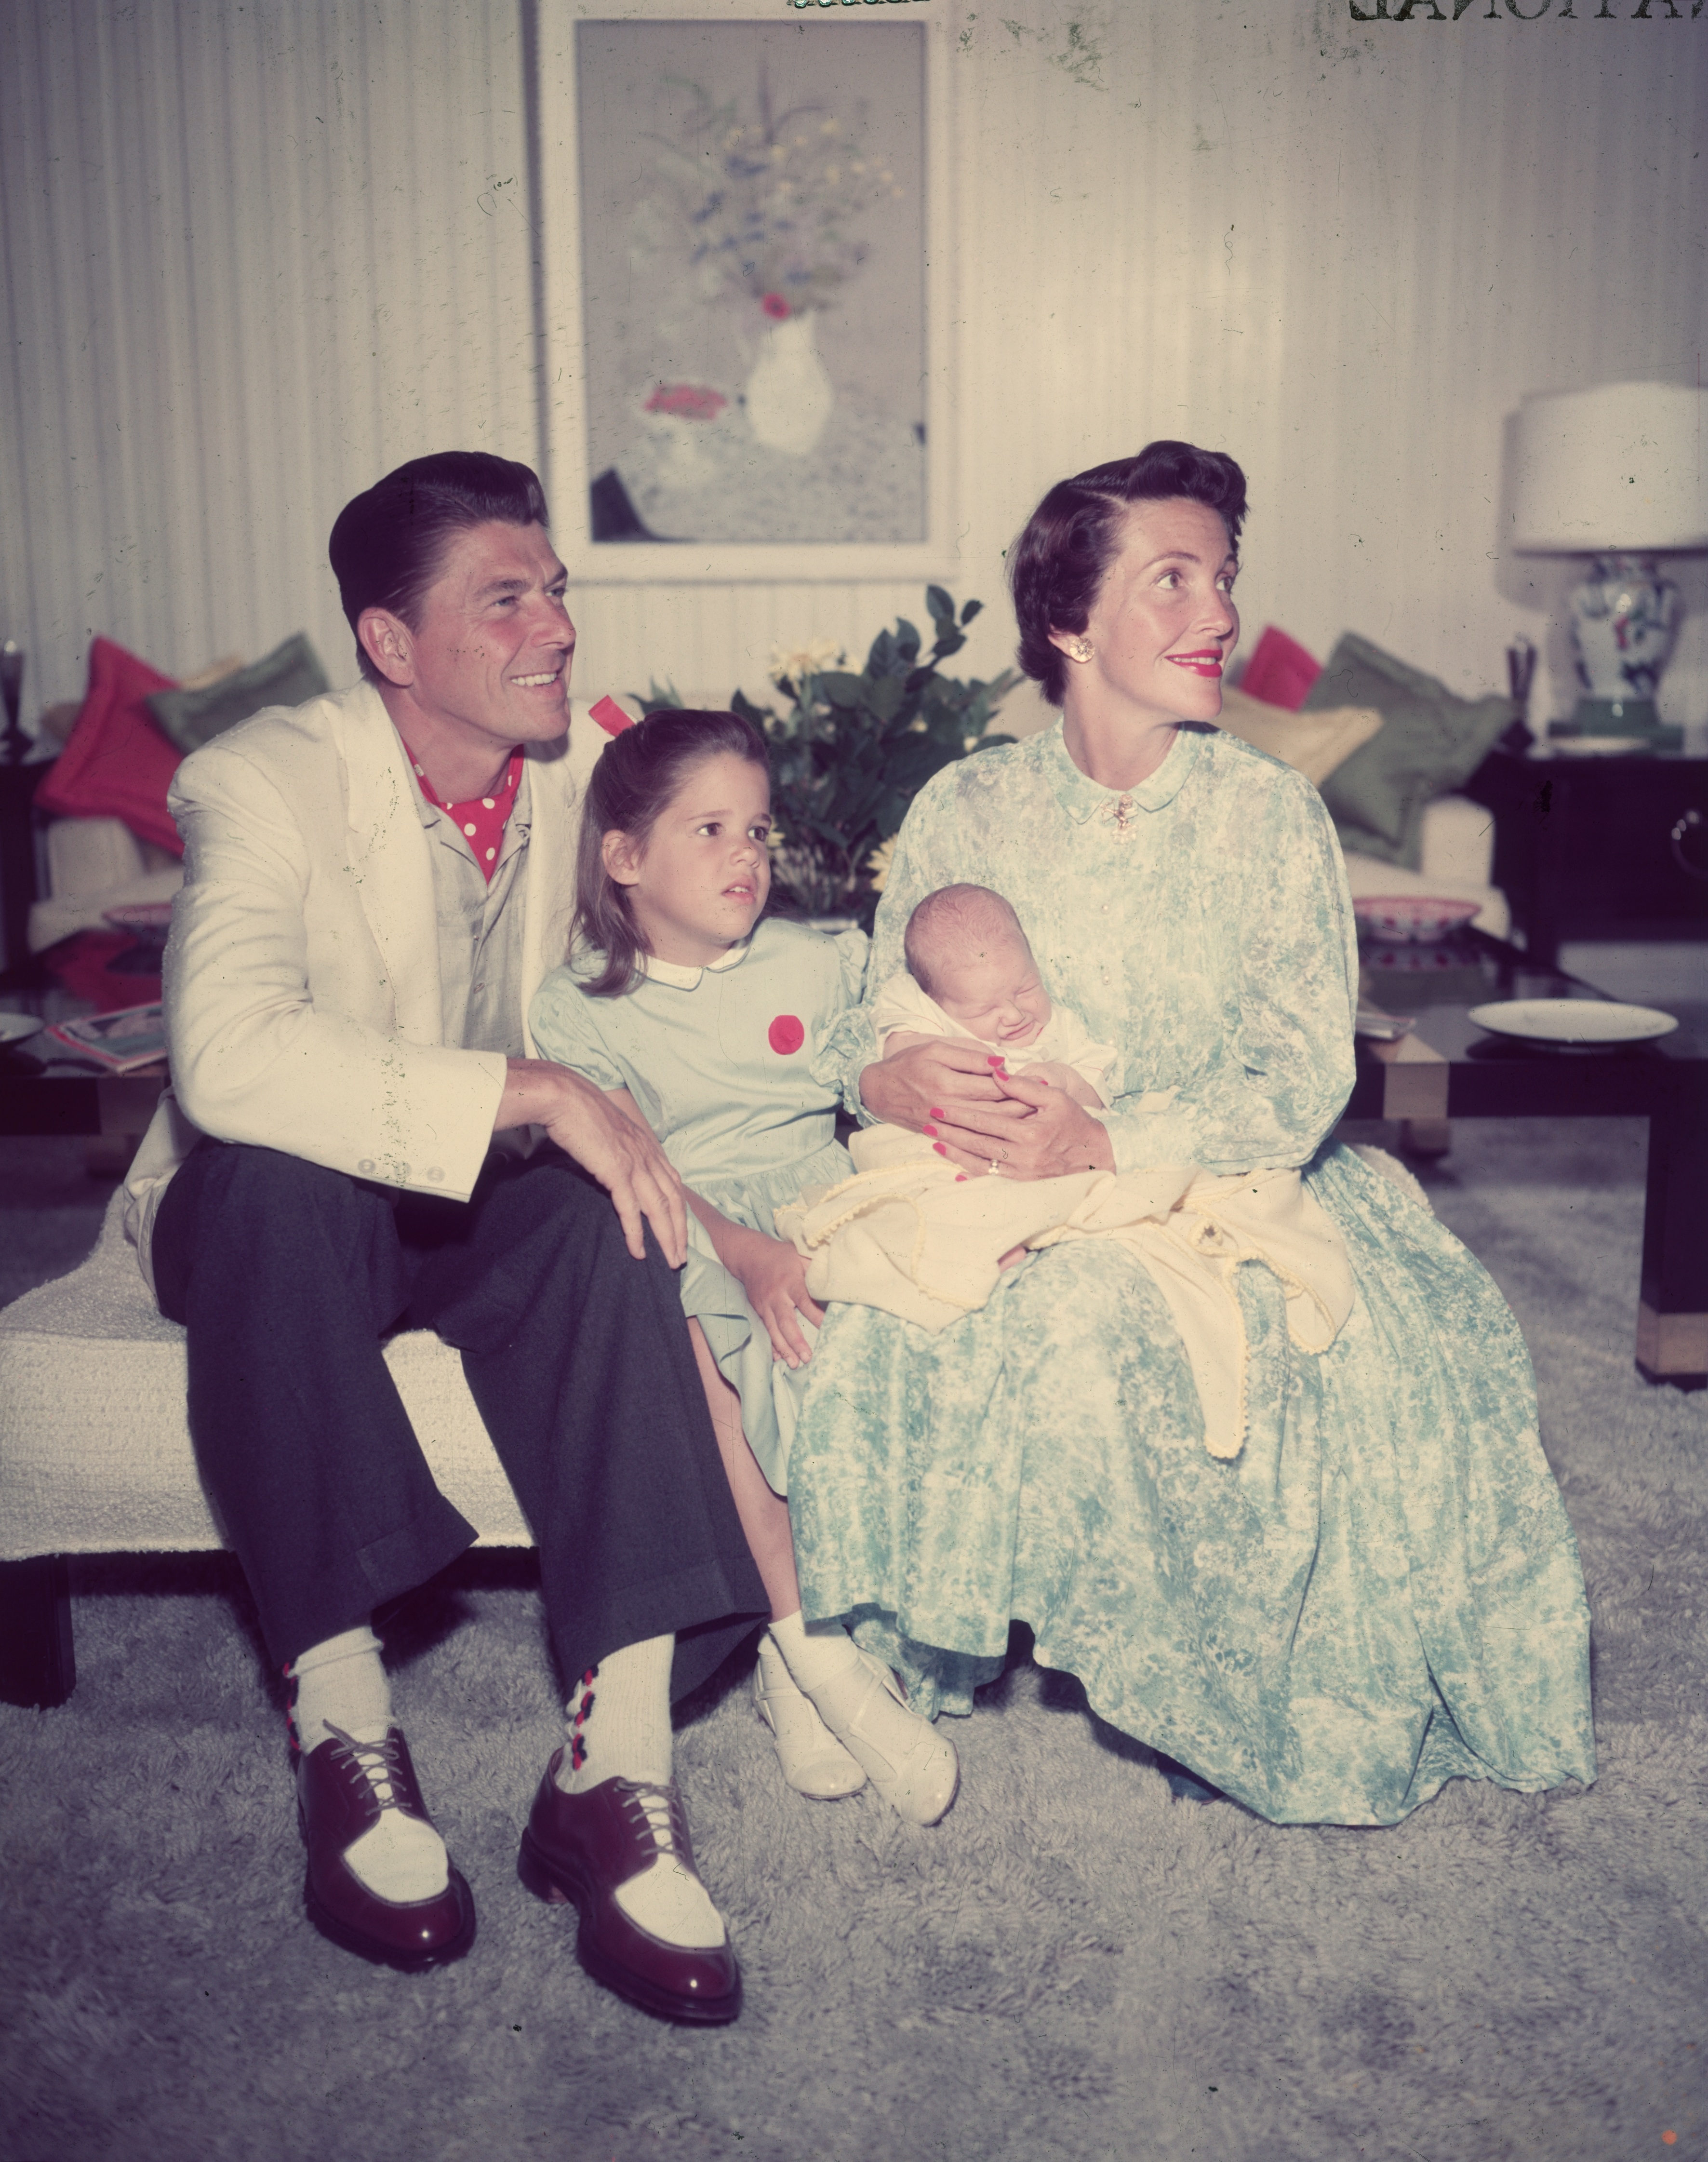 Family                                                              The Reagans had two children, Patricia Ann, next to Ron in this picture, and Ron Jr. Nancy's relationship with her daughter, who, as an actress, would take the professional name Patti Davis, became rocky later in their lives, as the younger Reagan refused to accept all of her parents' conservative views. Ronald Reagan also had one biological child, Maureen and one adopted child, Michael, from his previous marriage to Jane Wyman.